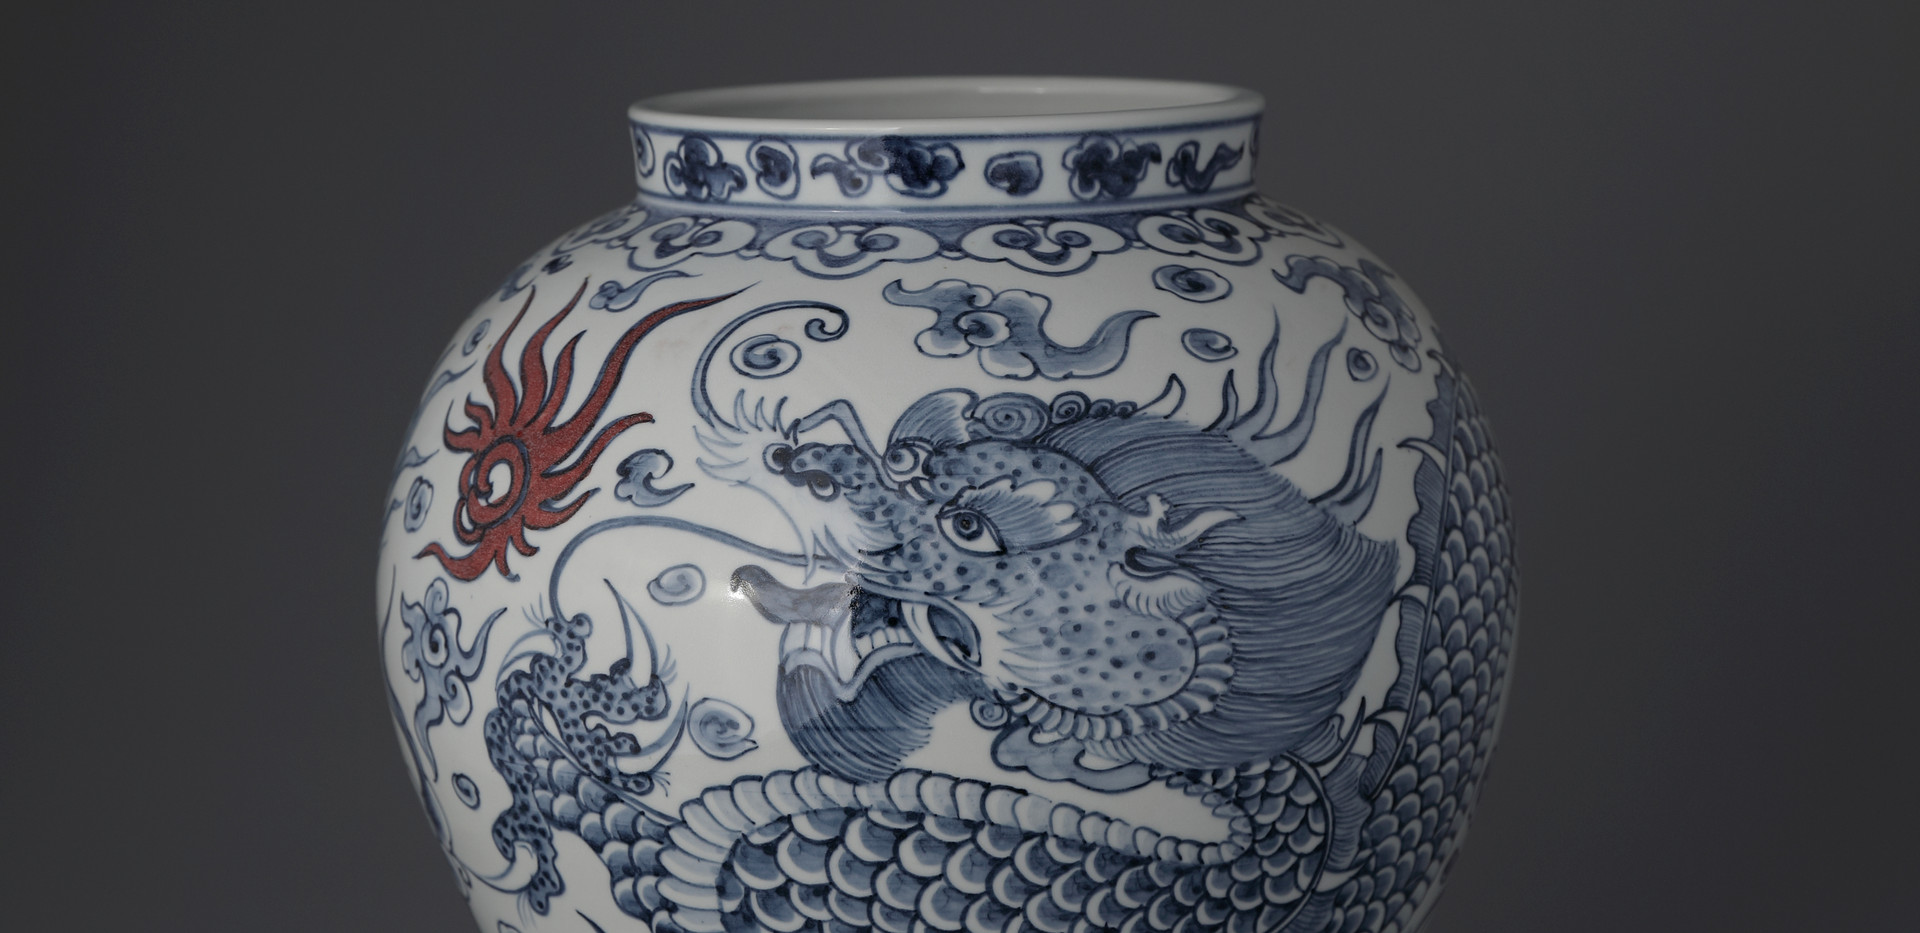 White and Blue Porcelain Vase with Dragon Decoration, 2018